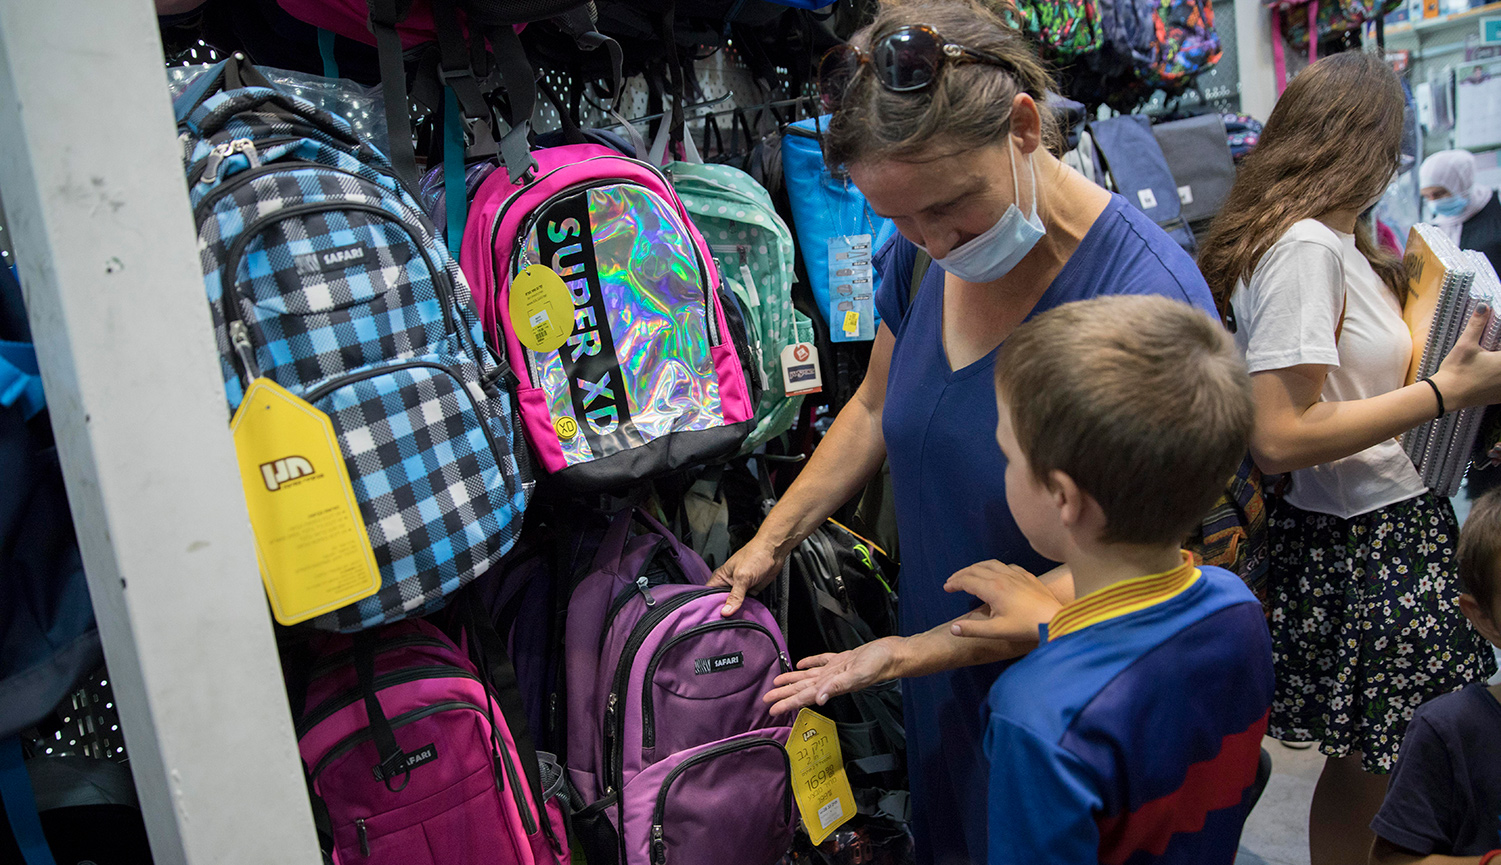 Olivier Fitoussi/Flash90.